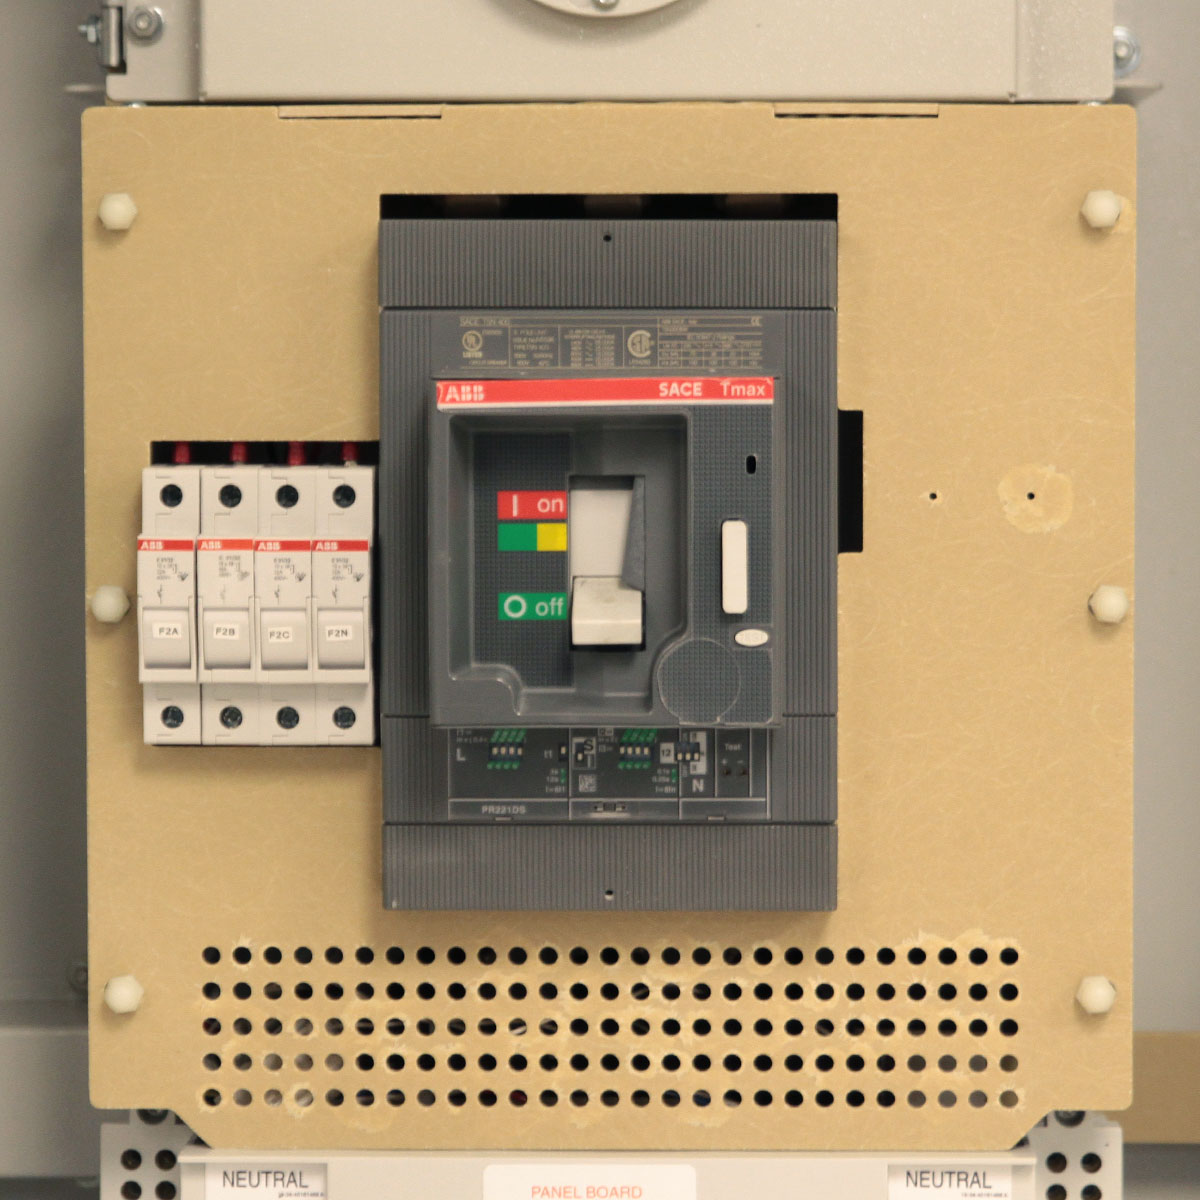 LayerZero Series 70: eRPP-SL1 Main Circuit Breaker.